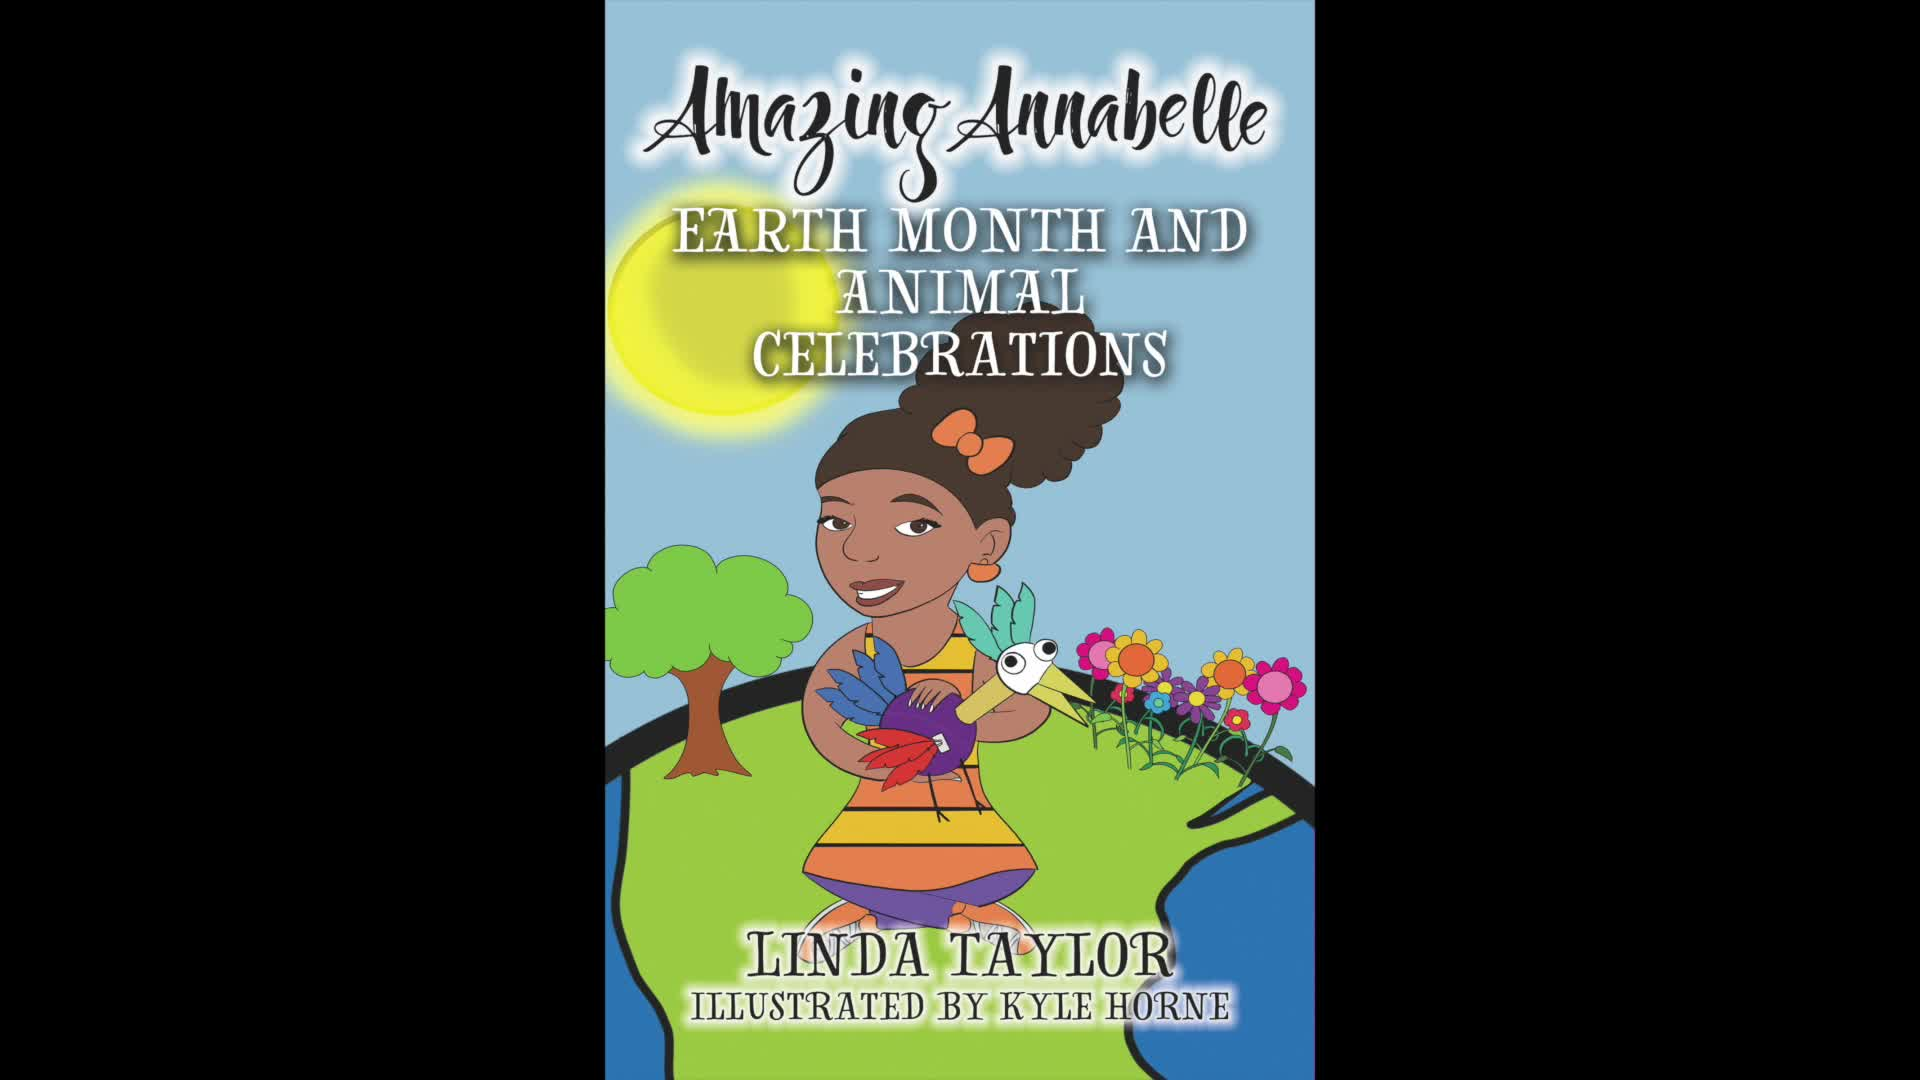 Amazing Annabelle Earth Month And Animal Celebrations Chapter 3